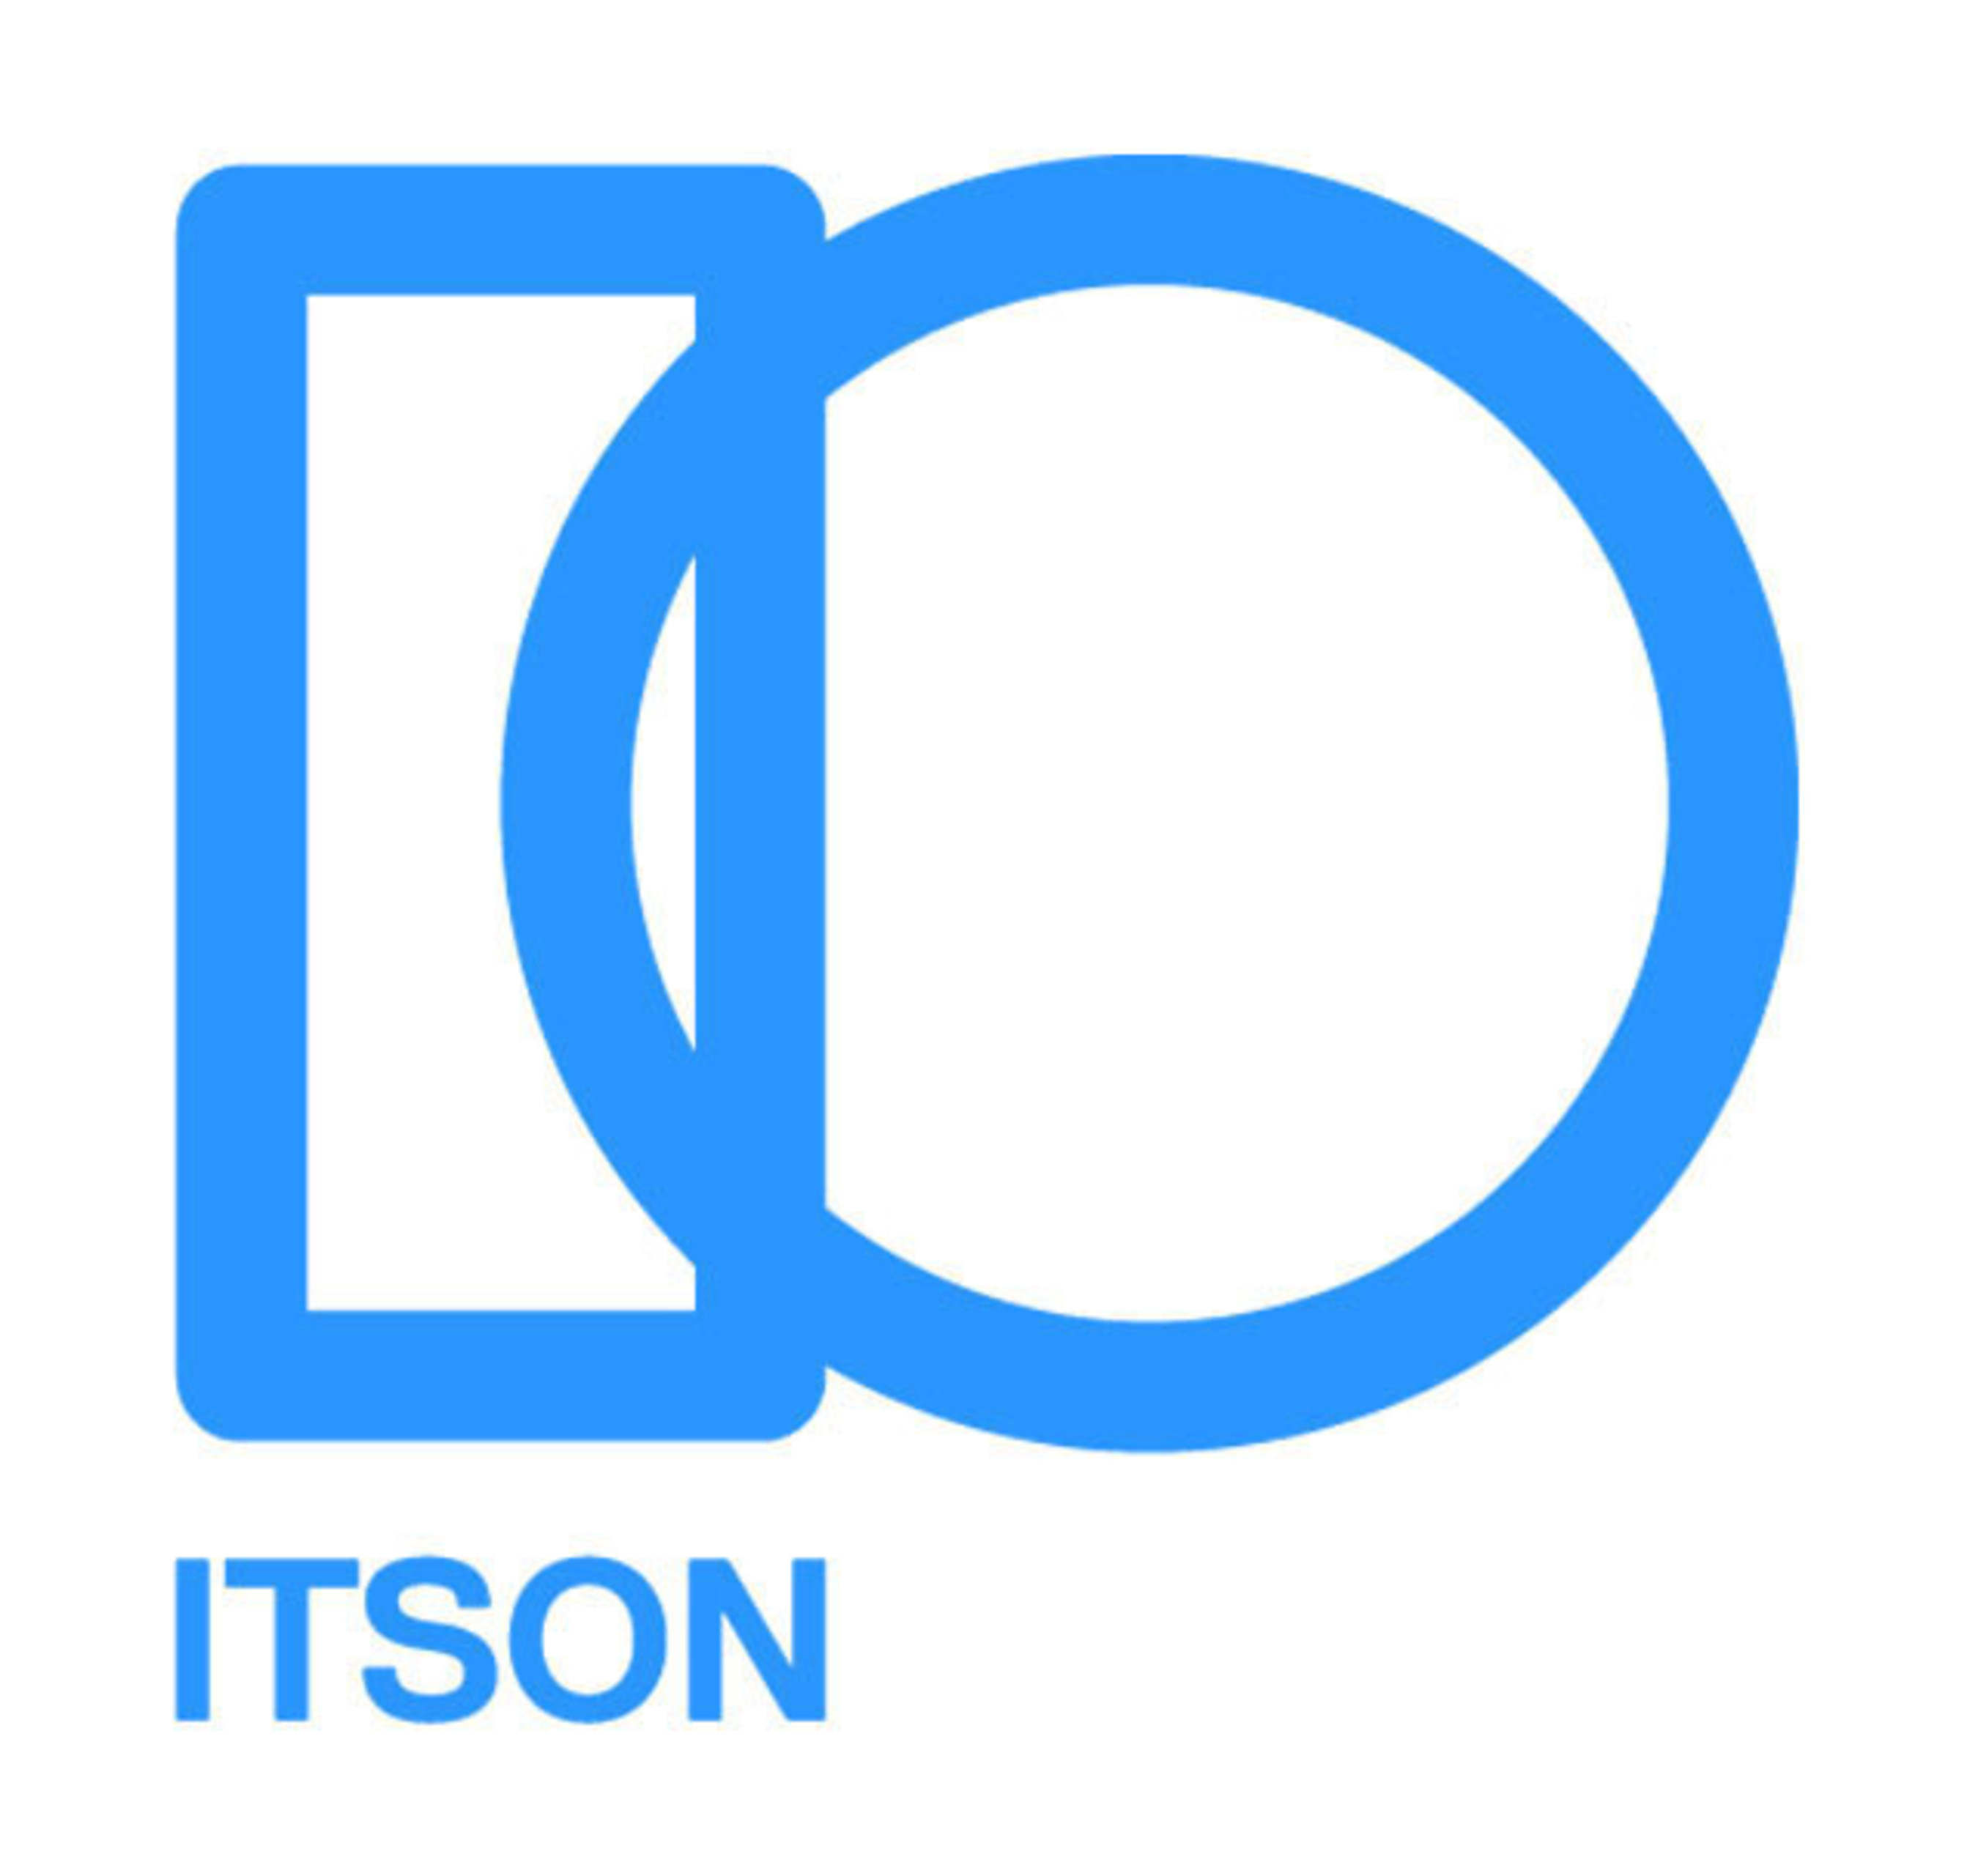 MTN Group Selects ItsOn to Deliver Digital Experiences to Customers